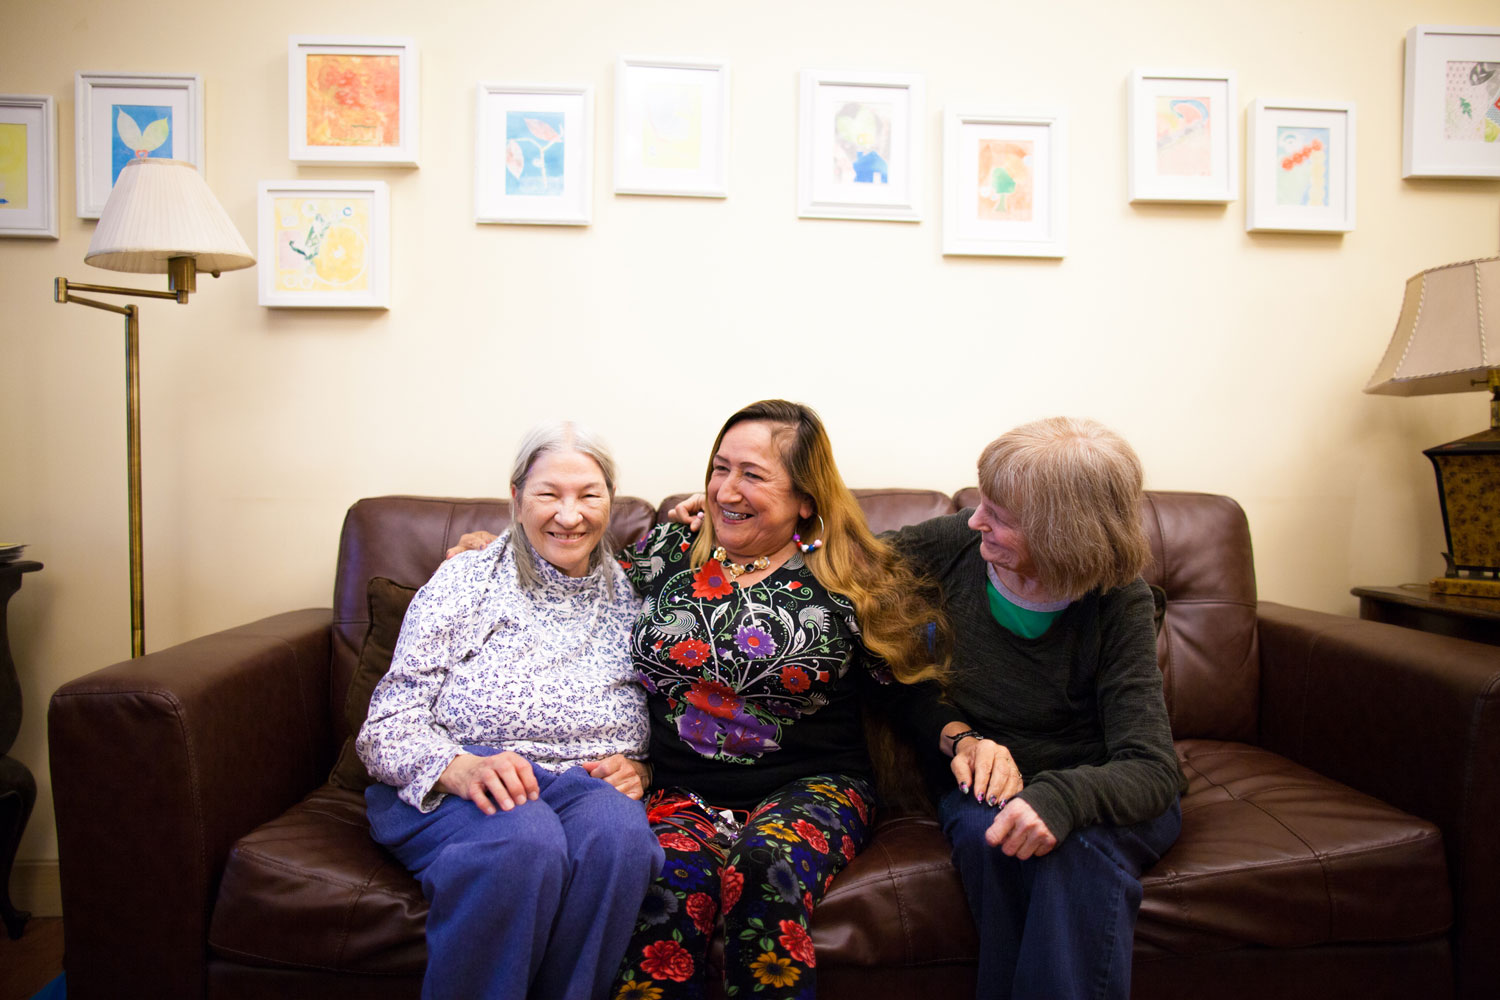 DWC provides comfortable spaces for women to build community with one another.